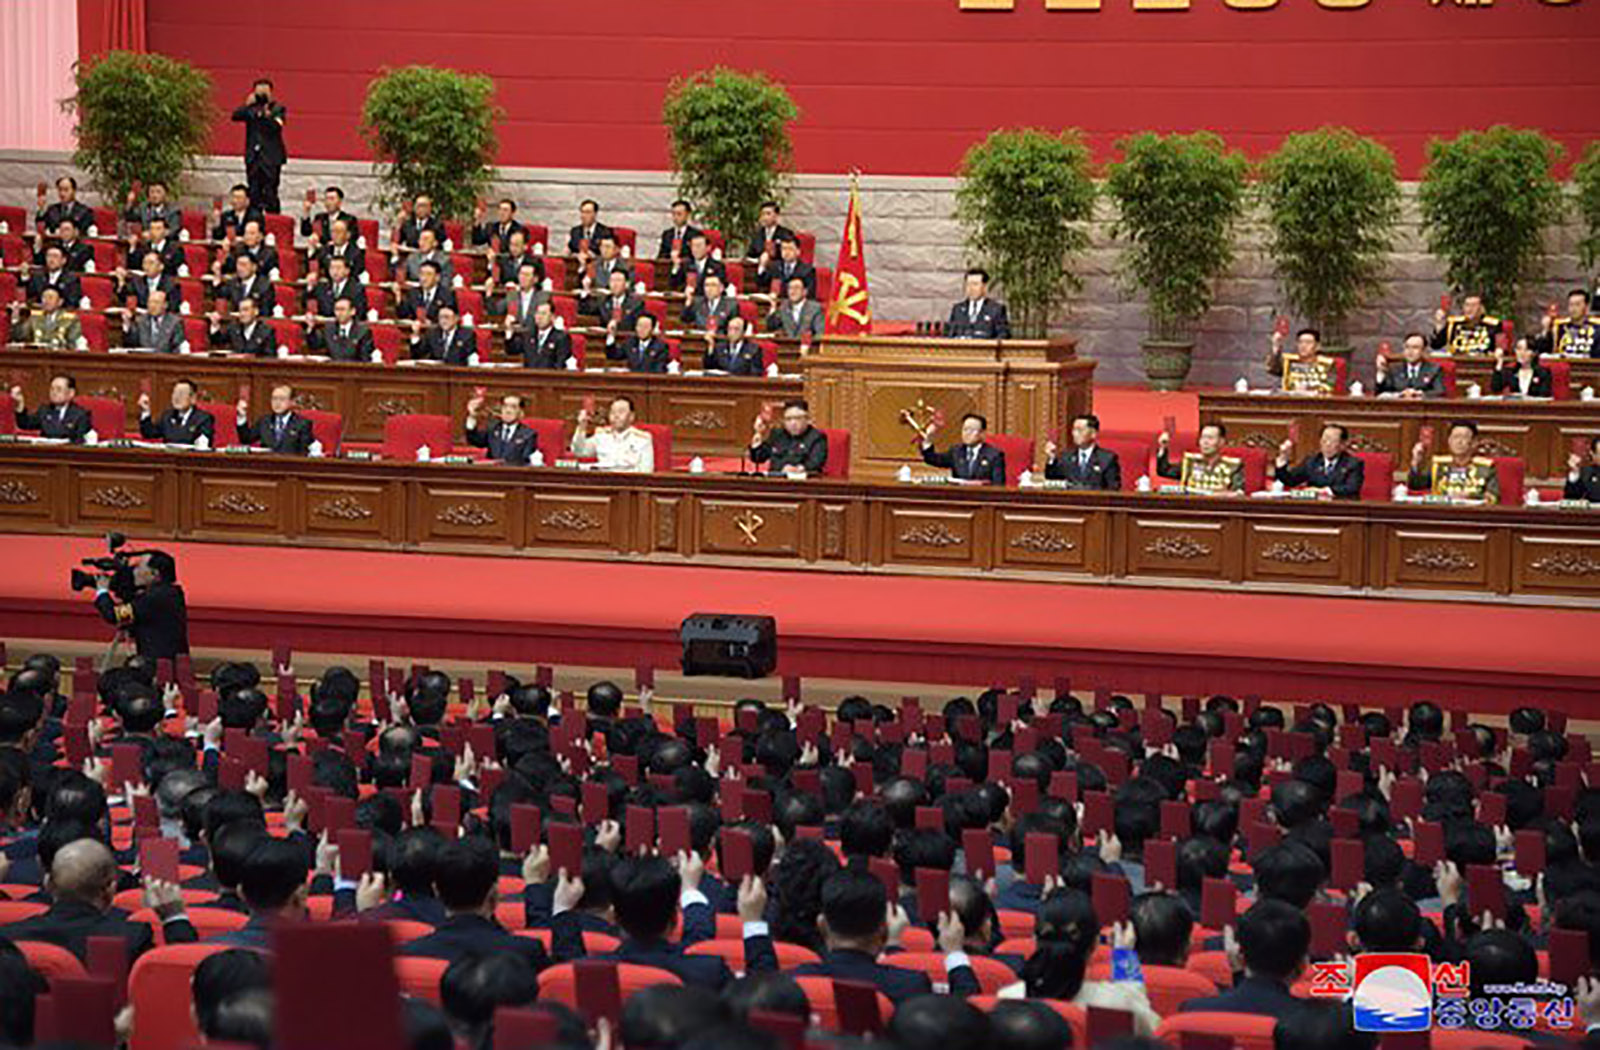 North Korean leader Kim Jong Un addressed the opening session of its 8th Workers' Party Congress on Tuesday morning, according to the state-run Korean Central News Agency.